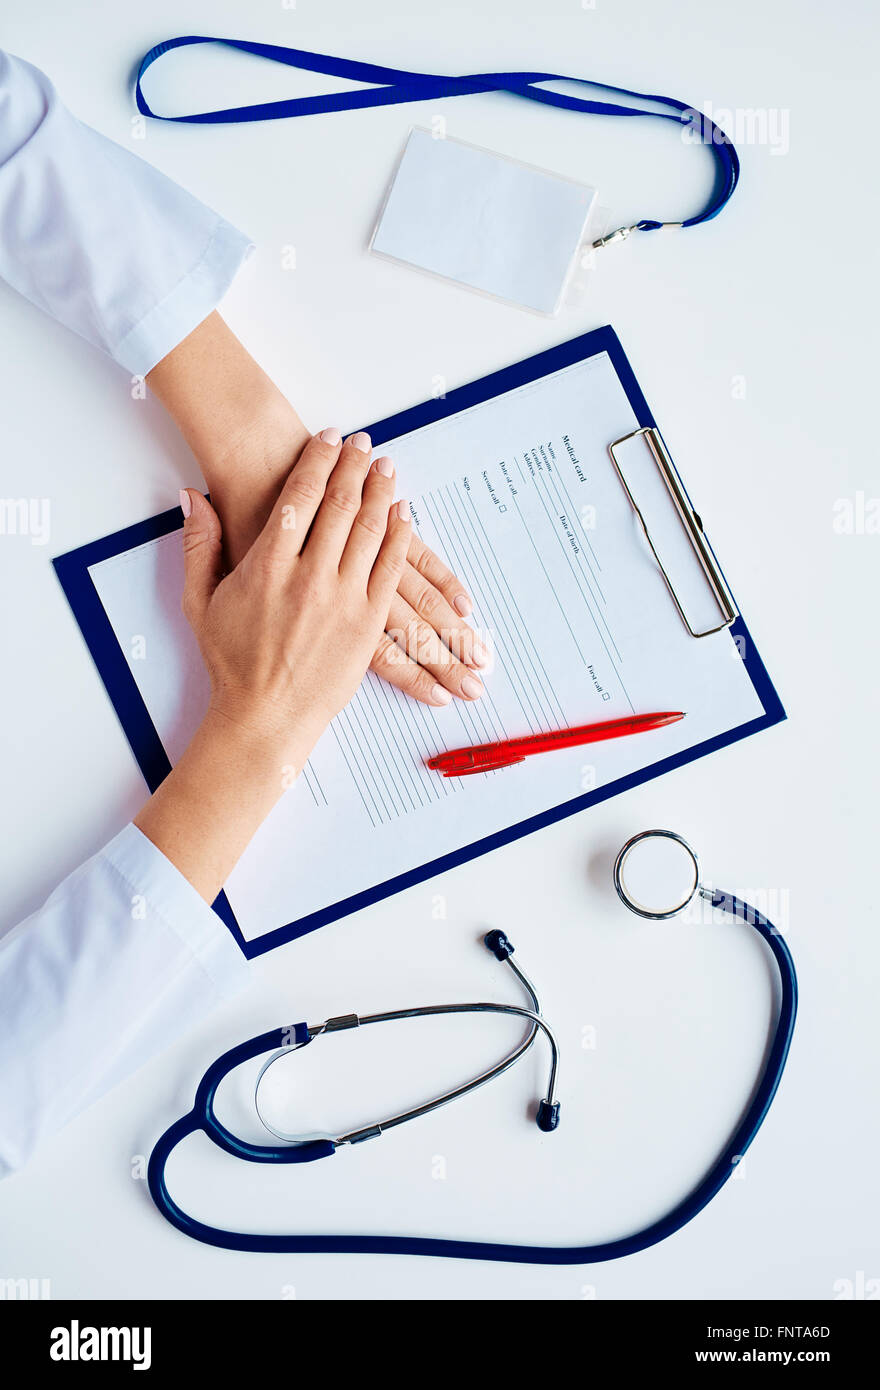 Doctor hands on medical card during work - Stock Image